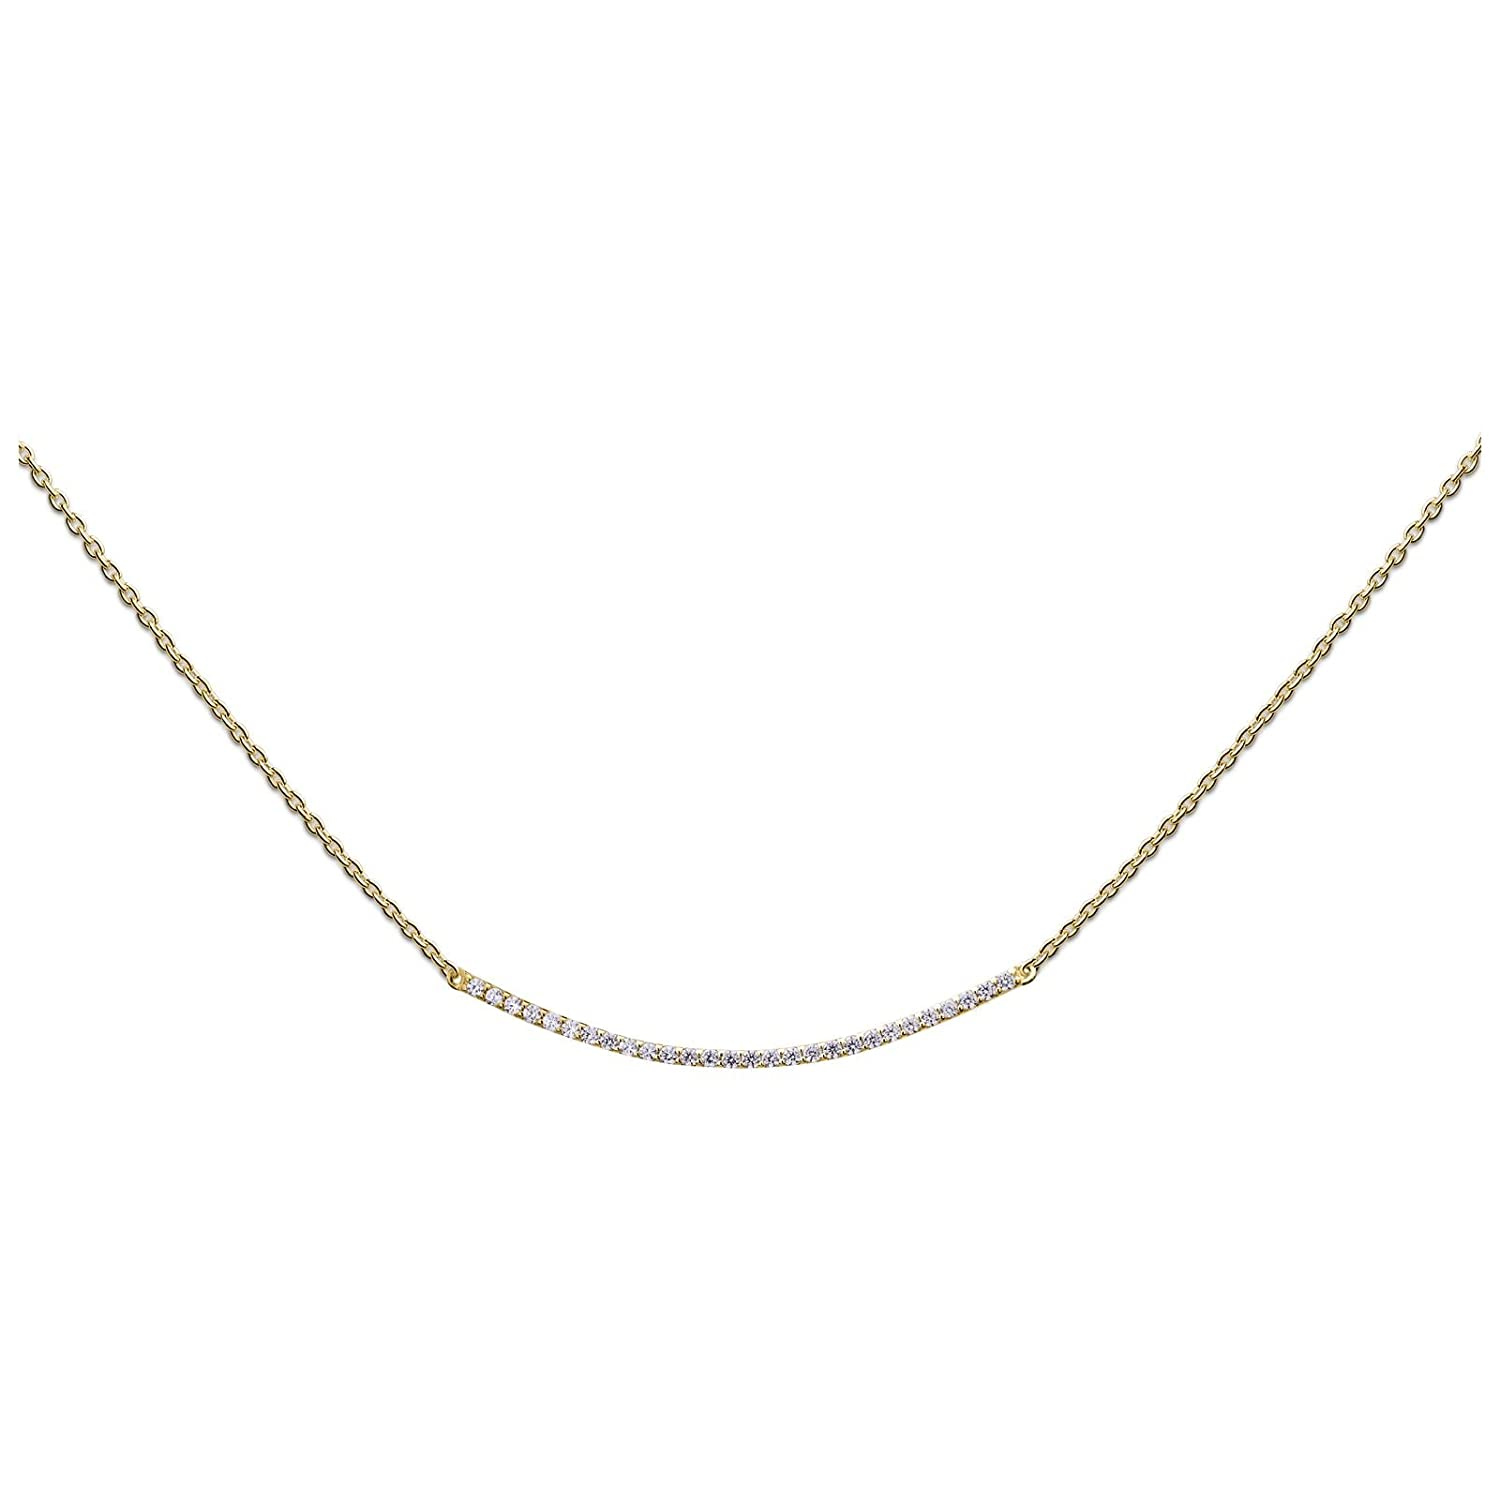 Kette Curved Bar N243CBZ15G Heart to get 26423-00